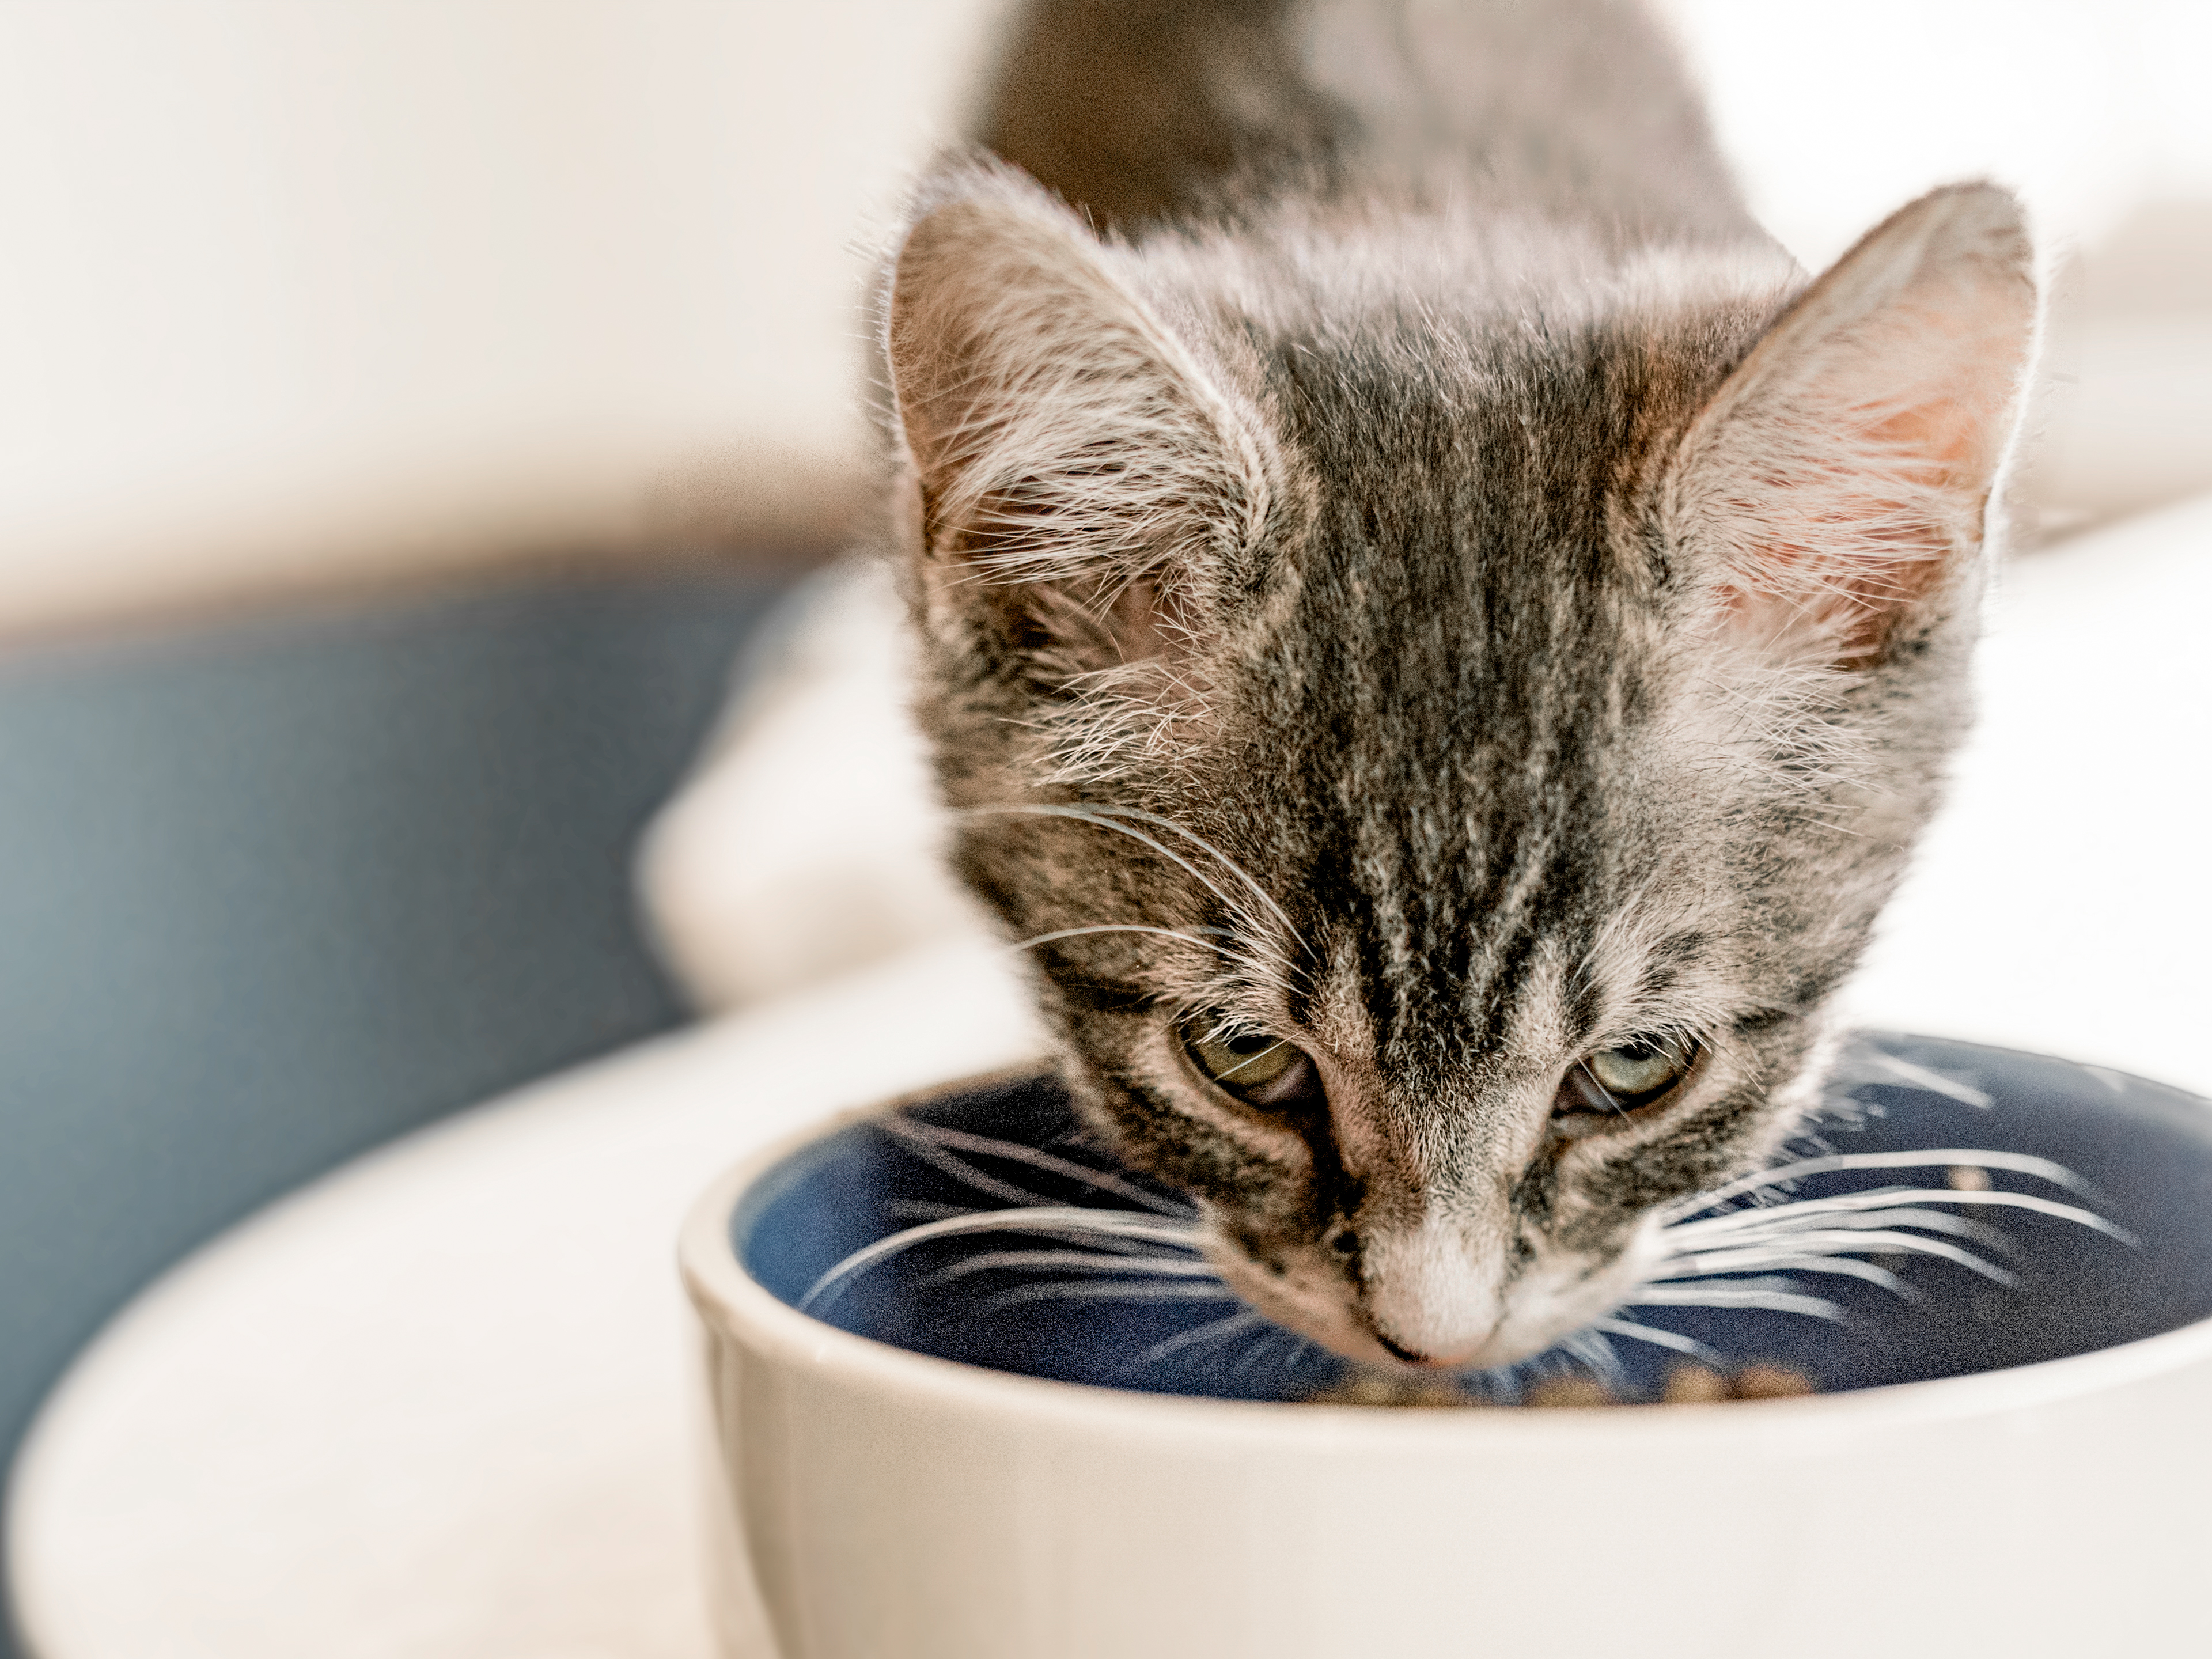 Grey kitten eating from a ceramic food bowl